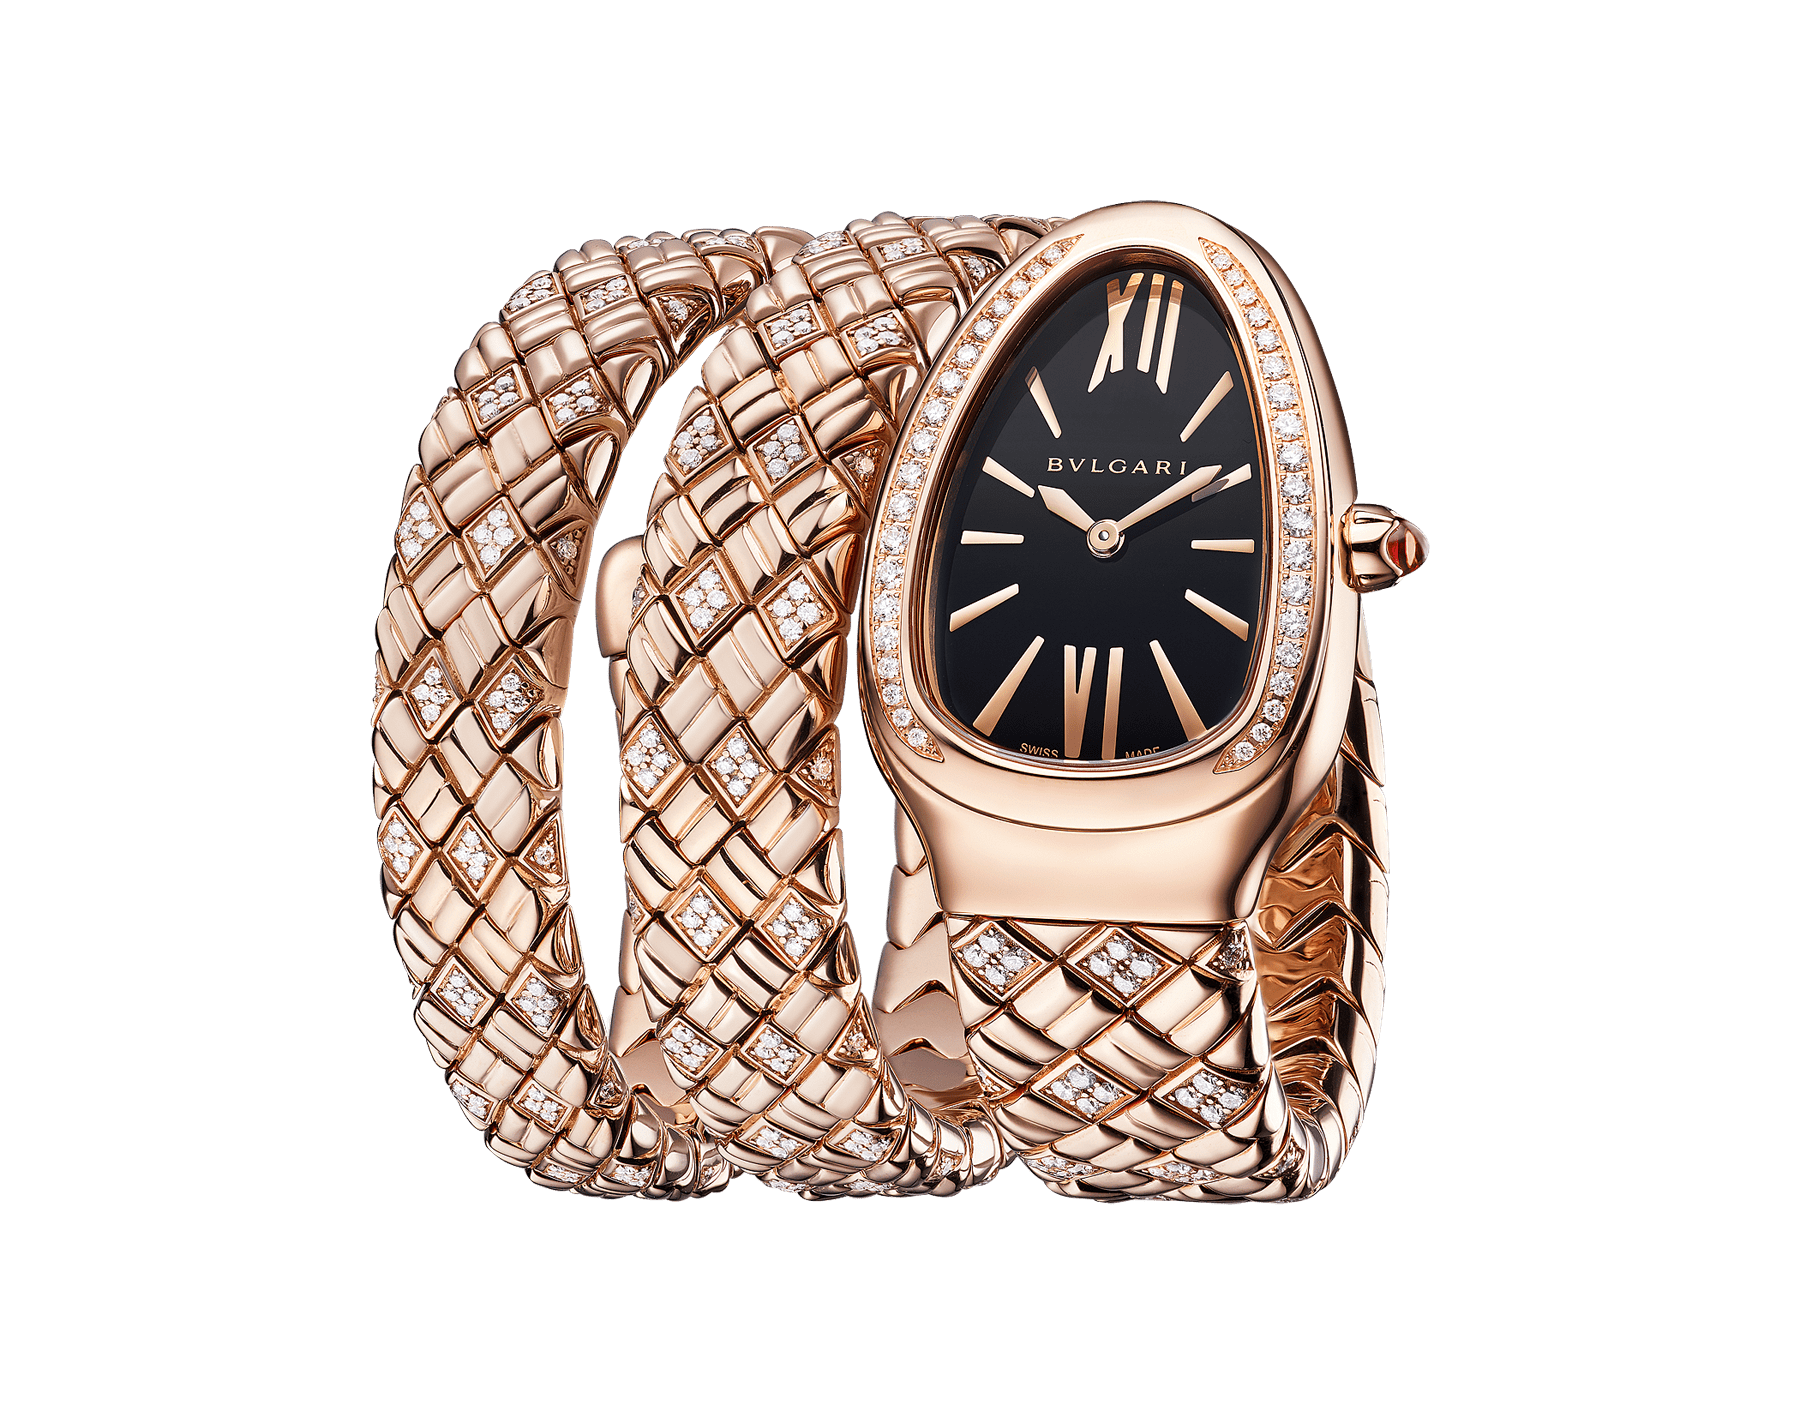 Serpenti Spiga double-spiral watch with 18 kt rose gold case and bracelet set with diamonds, and black dial 103252 image 2